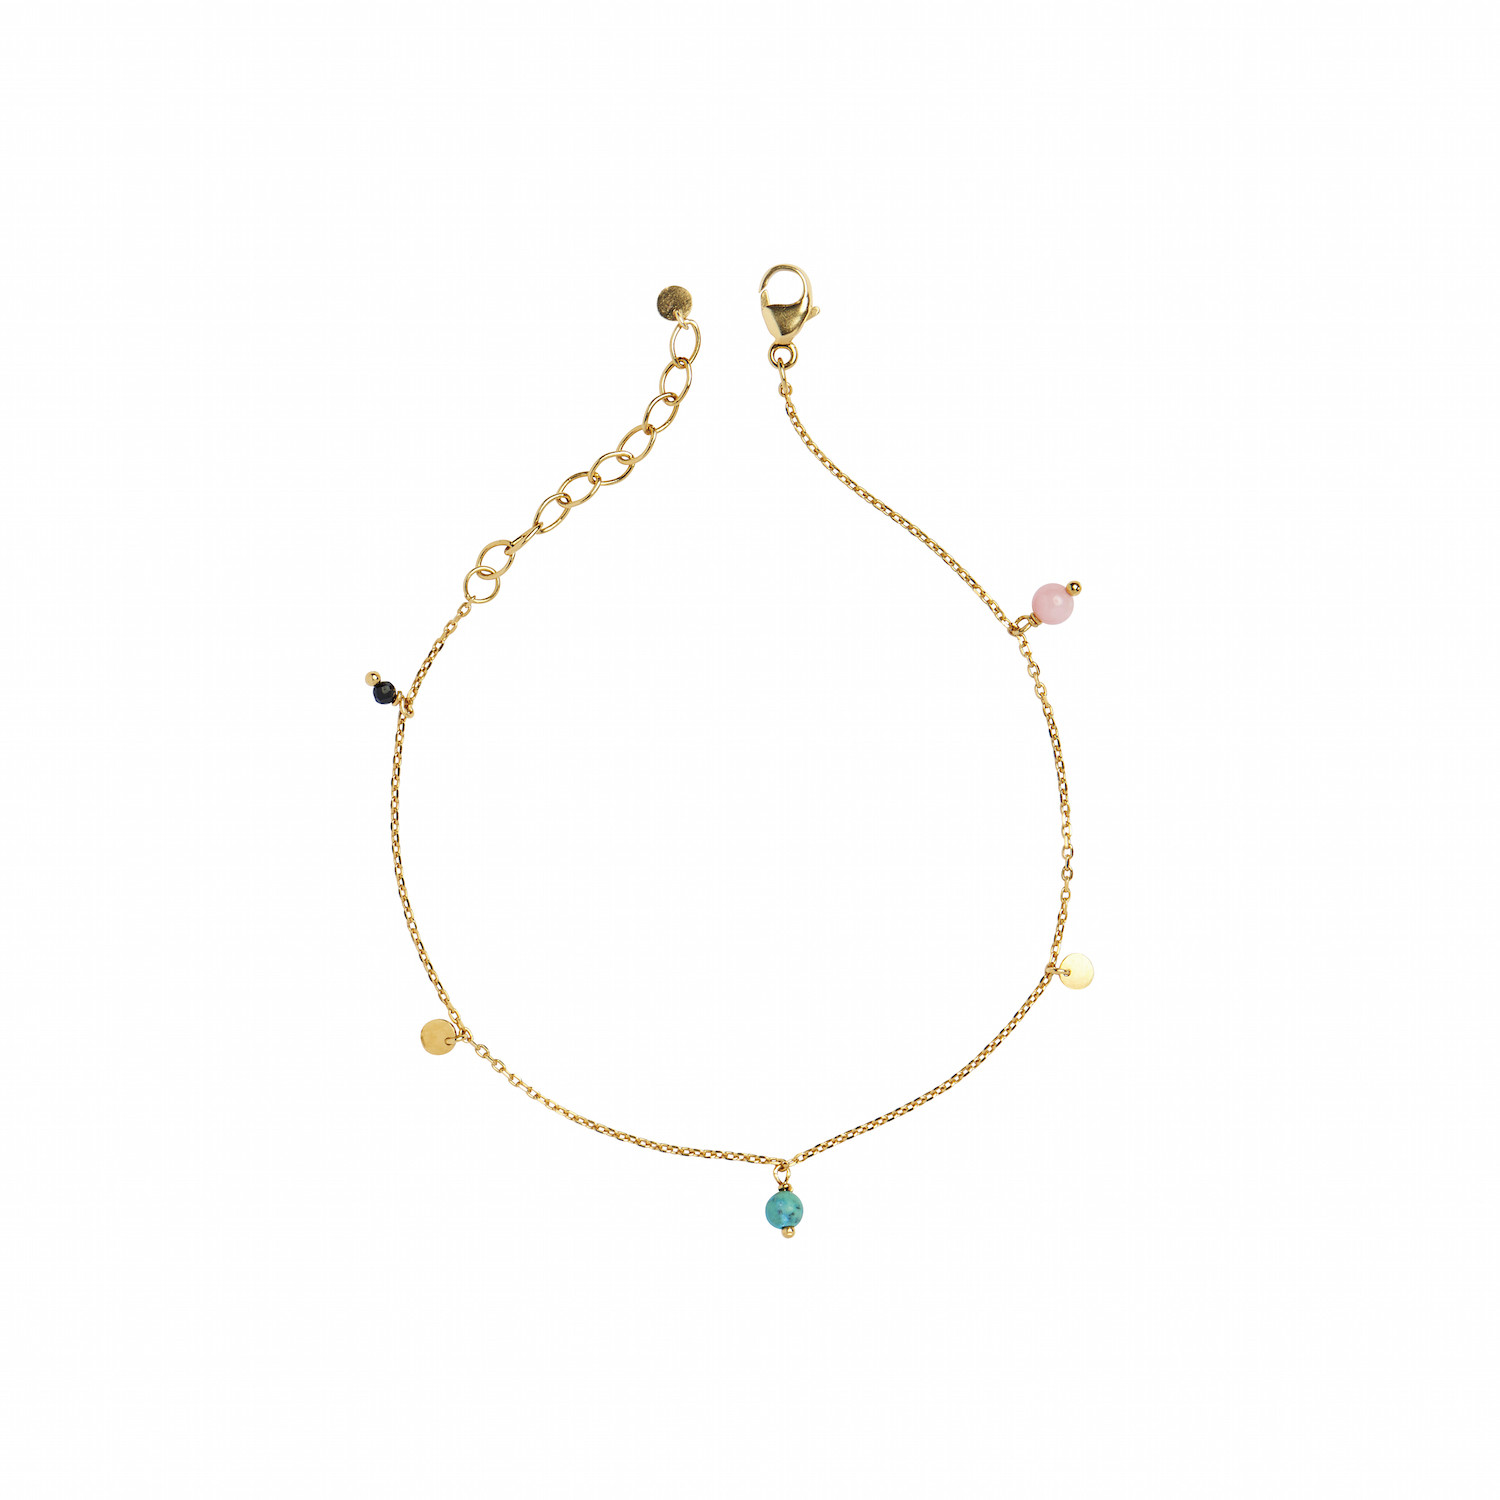 Petit Coin And Stones - Black Spinel, Coral and Turquoise - Bracelet